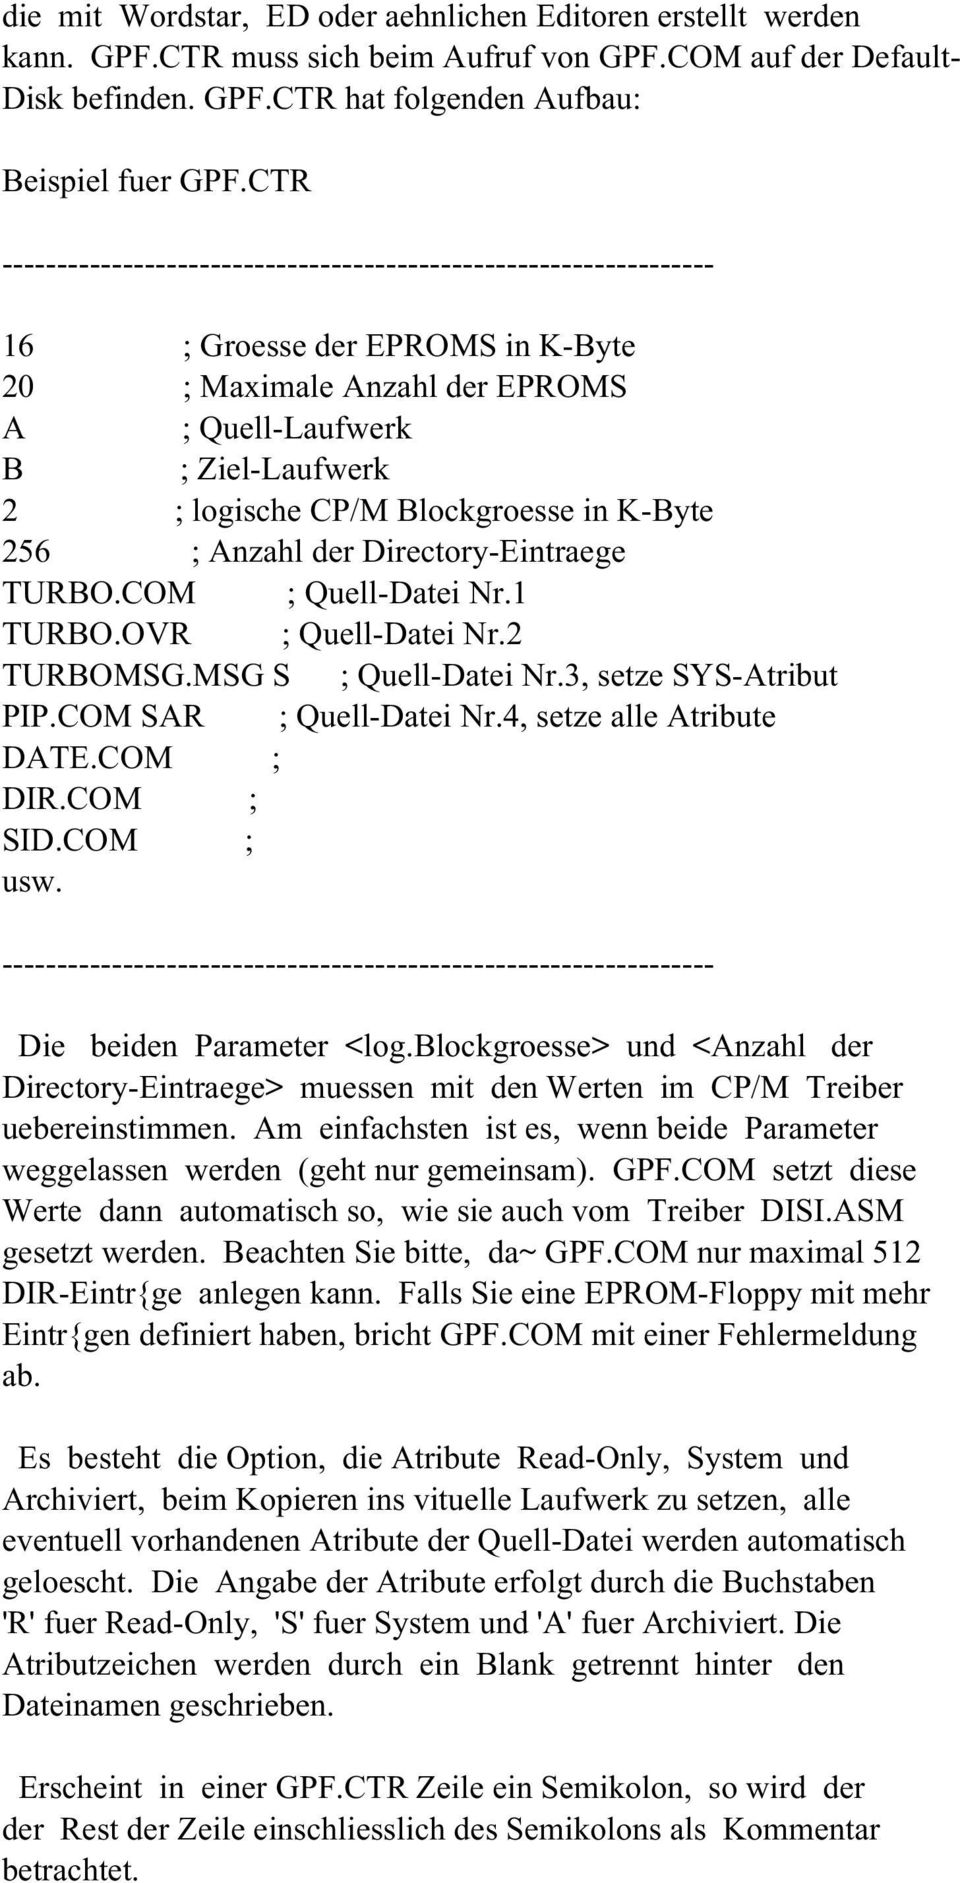 Blockgroesse in K-Byte 256 ; Anzahl der Directory-Eintraege TURBO.COM ; Quell-Datei Nr.1 TURBO.OVR ; Quell-Datei Nr.2 TURBOMSG.MSG S ; Quell-Datei Nr.3, setze SYS-Atribut PIP.COM SAR ; Quell-Datei Nr.